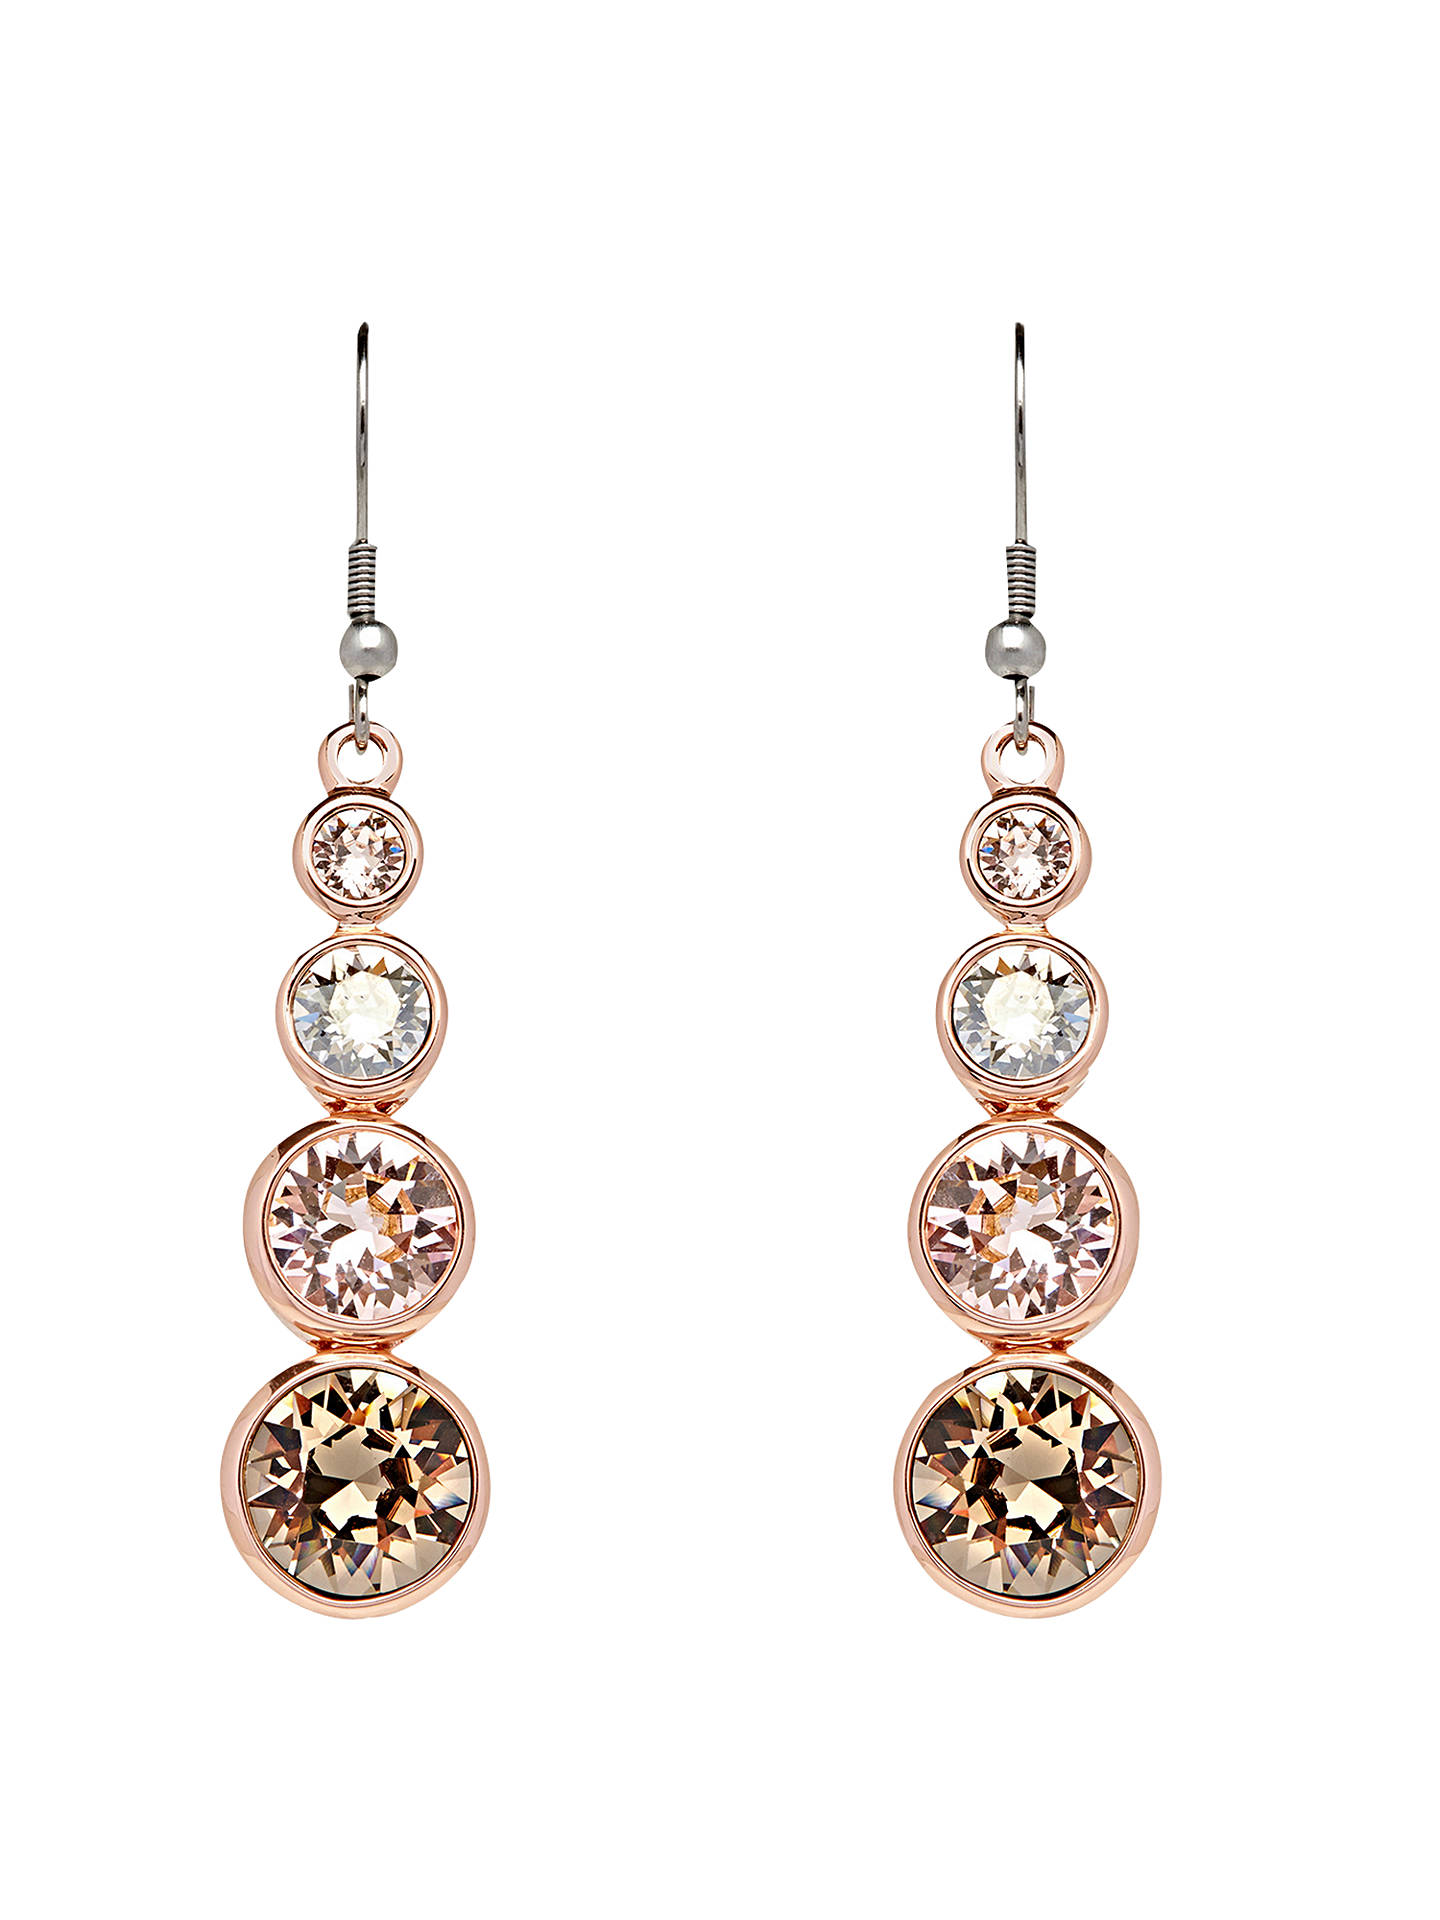 4a48a5ab136234 Buy Karen Millen Teardrop Swarovski Crystal Drop Earrings